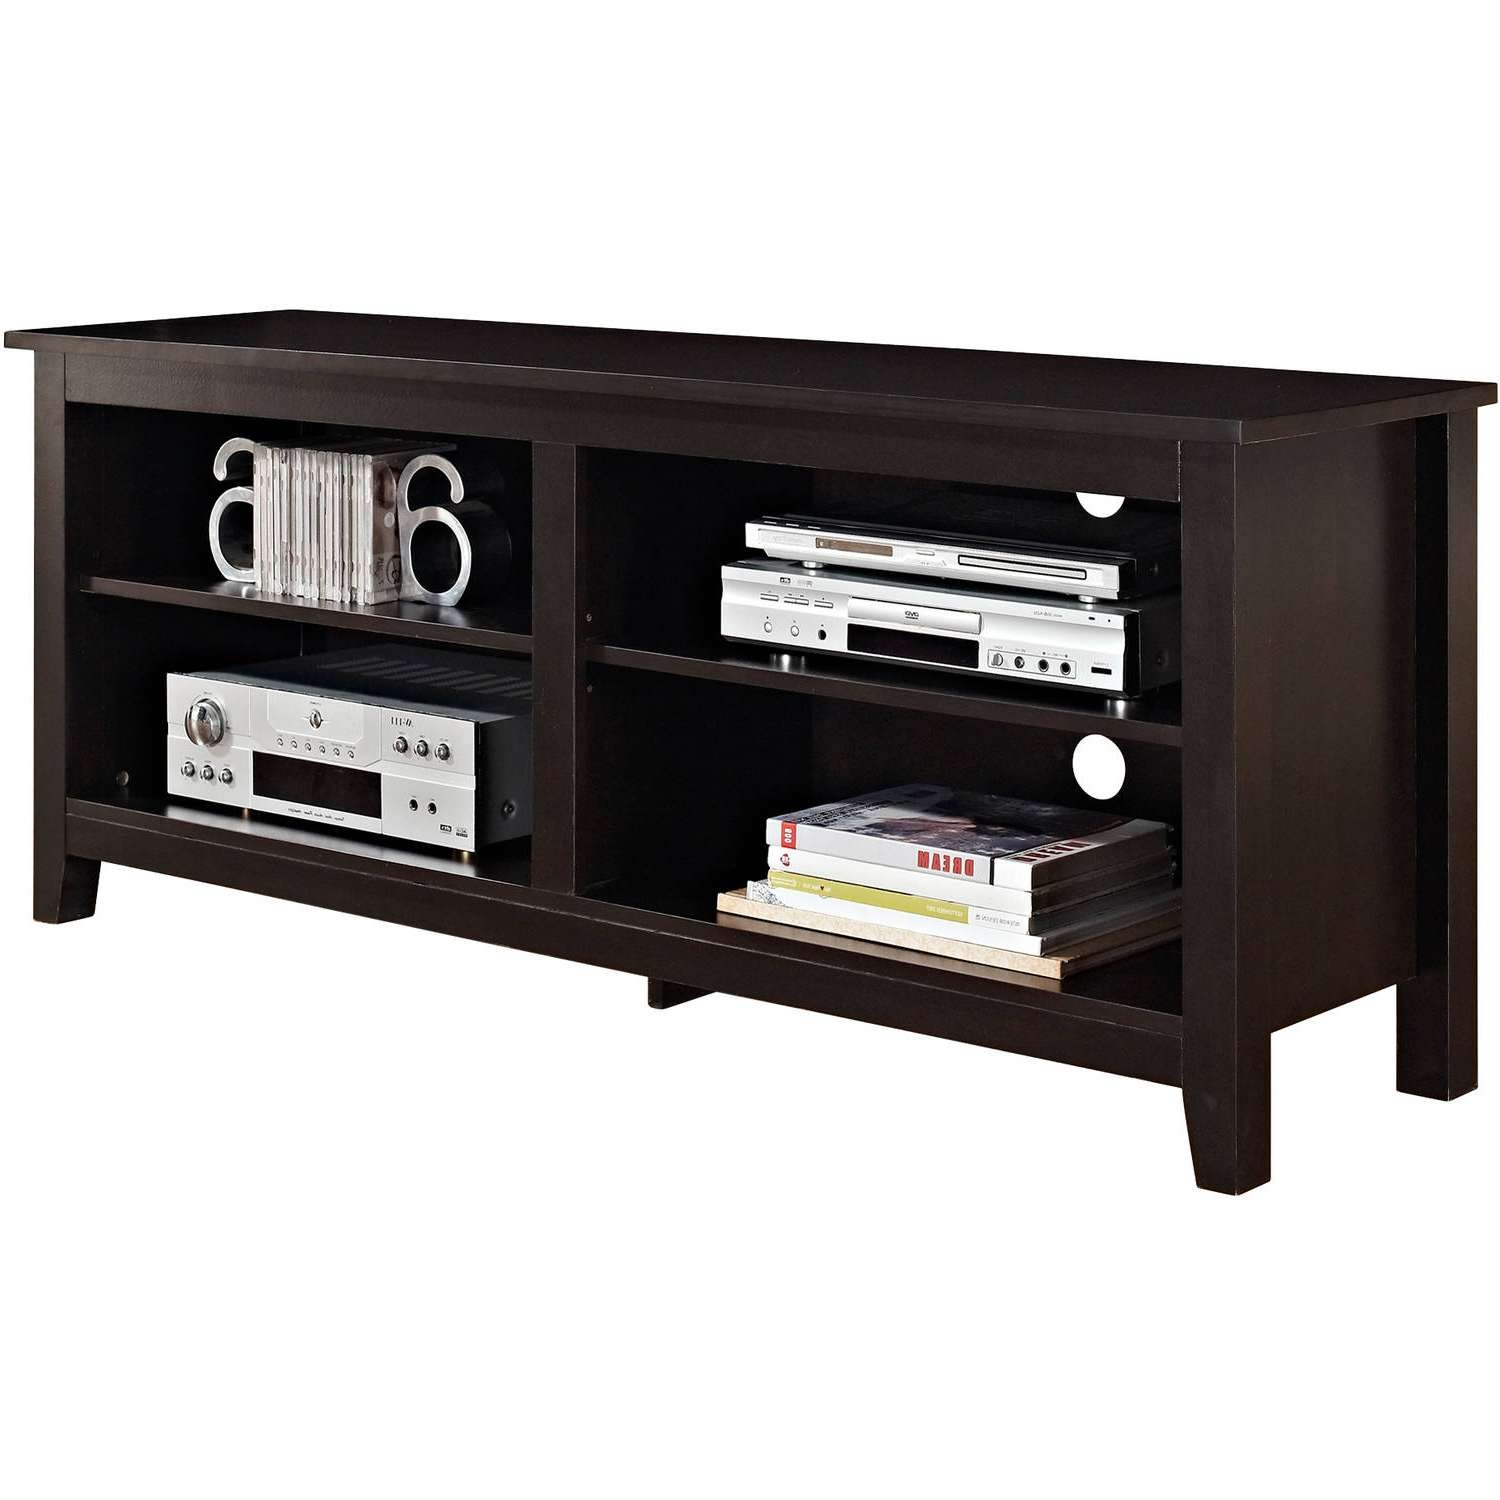 """Wood Tv Stand For Tvs Up To 60"""", Espresso – Walmart Intended For Expresso Tv Stands (View 13 of 15)"""